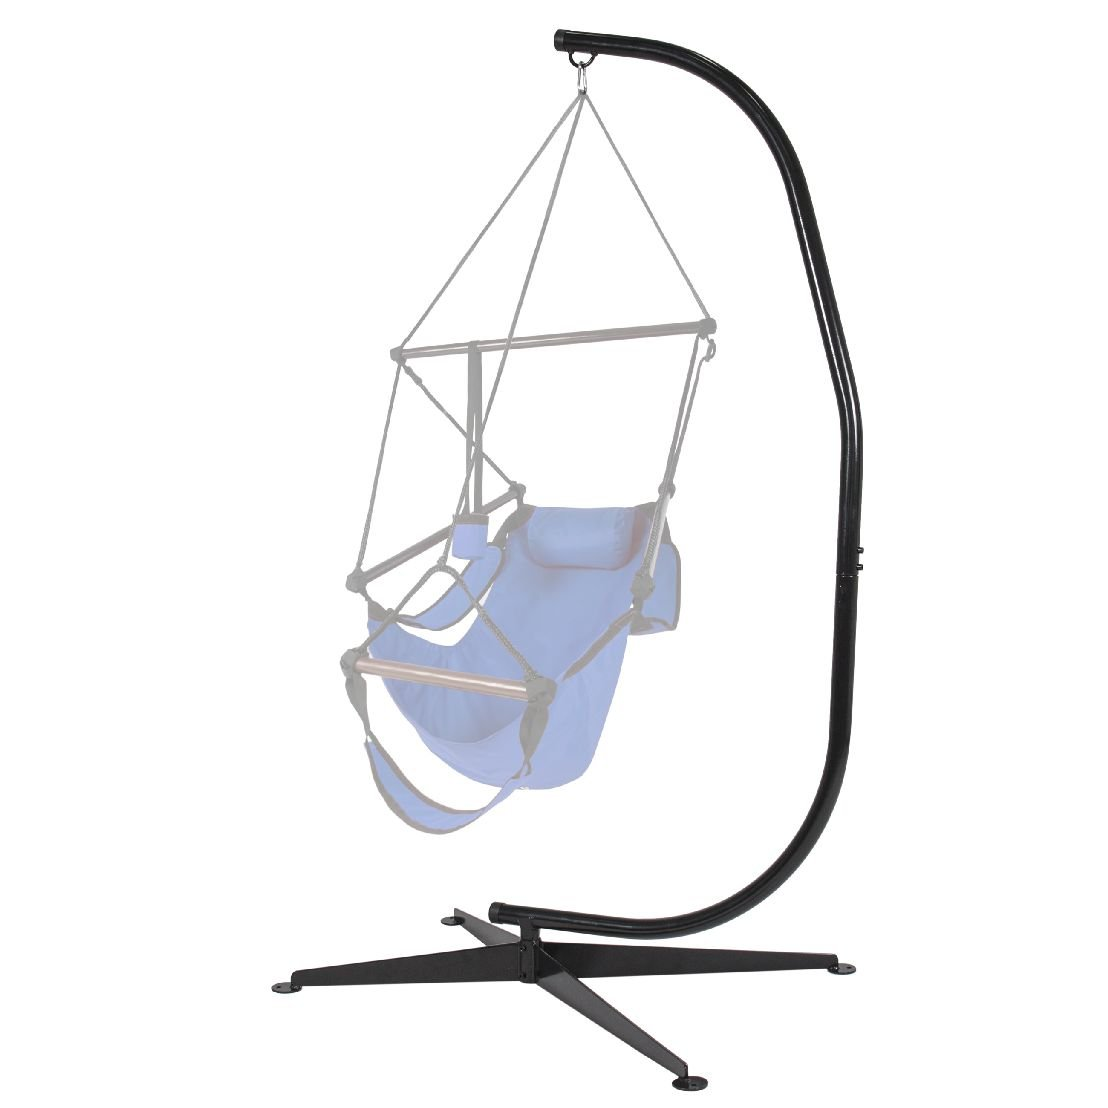 Hammock Chair C Stand Solid Steel For Hammock Air Porch Swing Chair by BEC